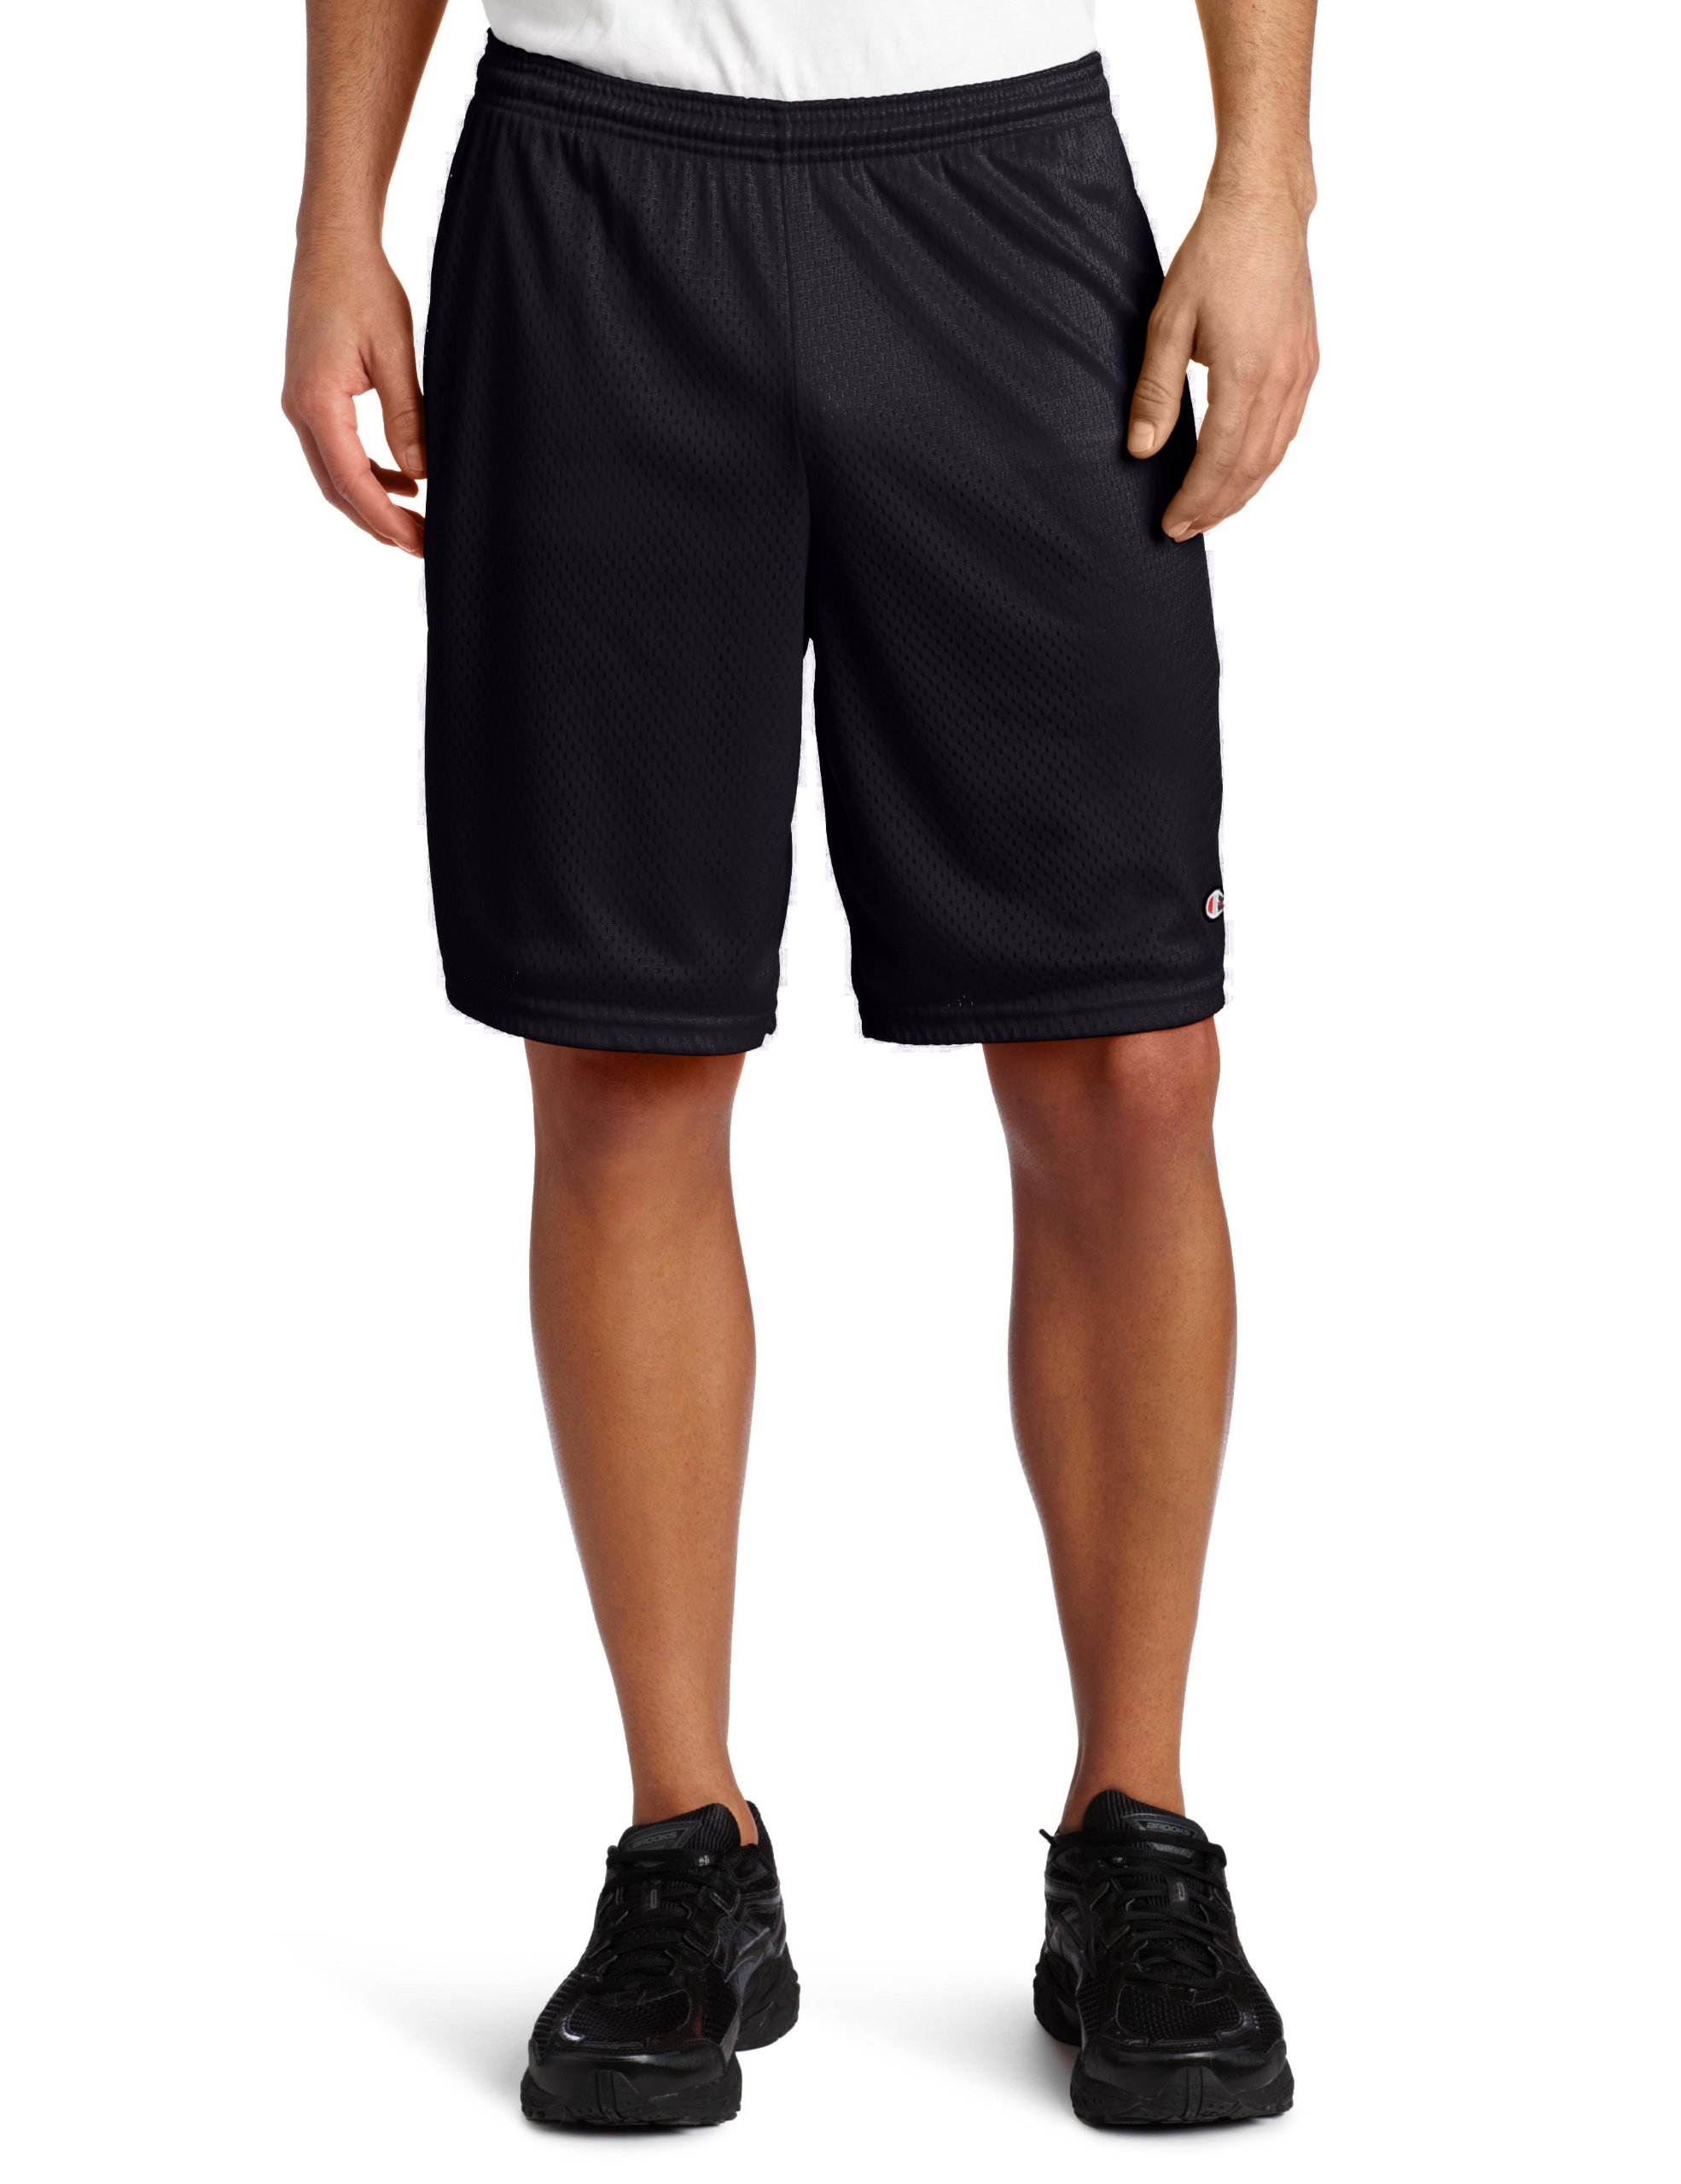 Champion Men's Long Mesh Short With Pockets,Black,LARGE by Champion